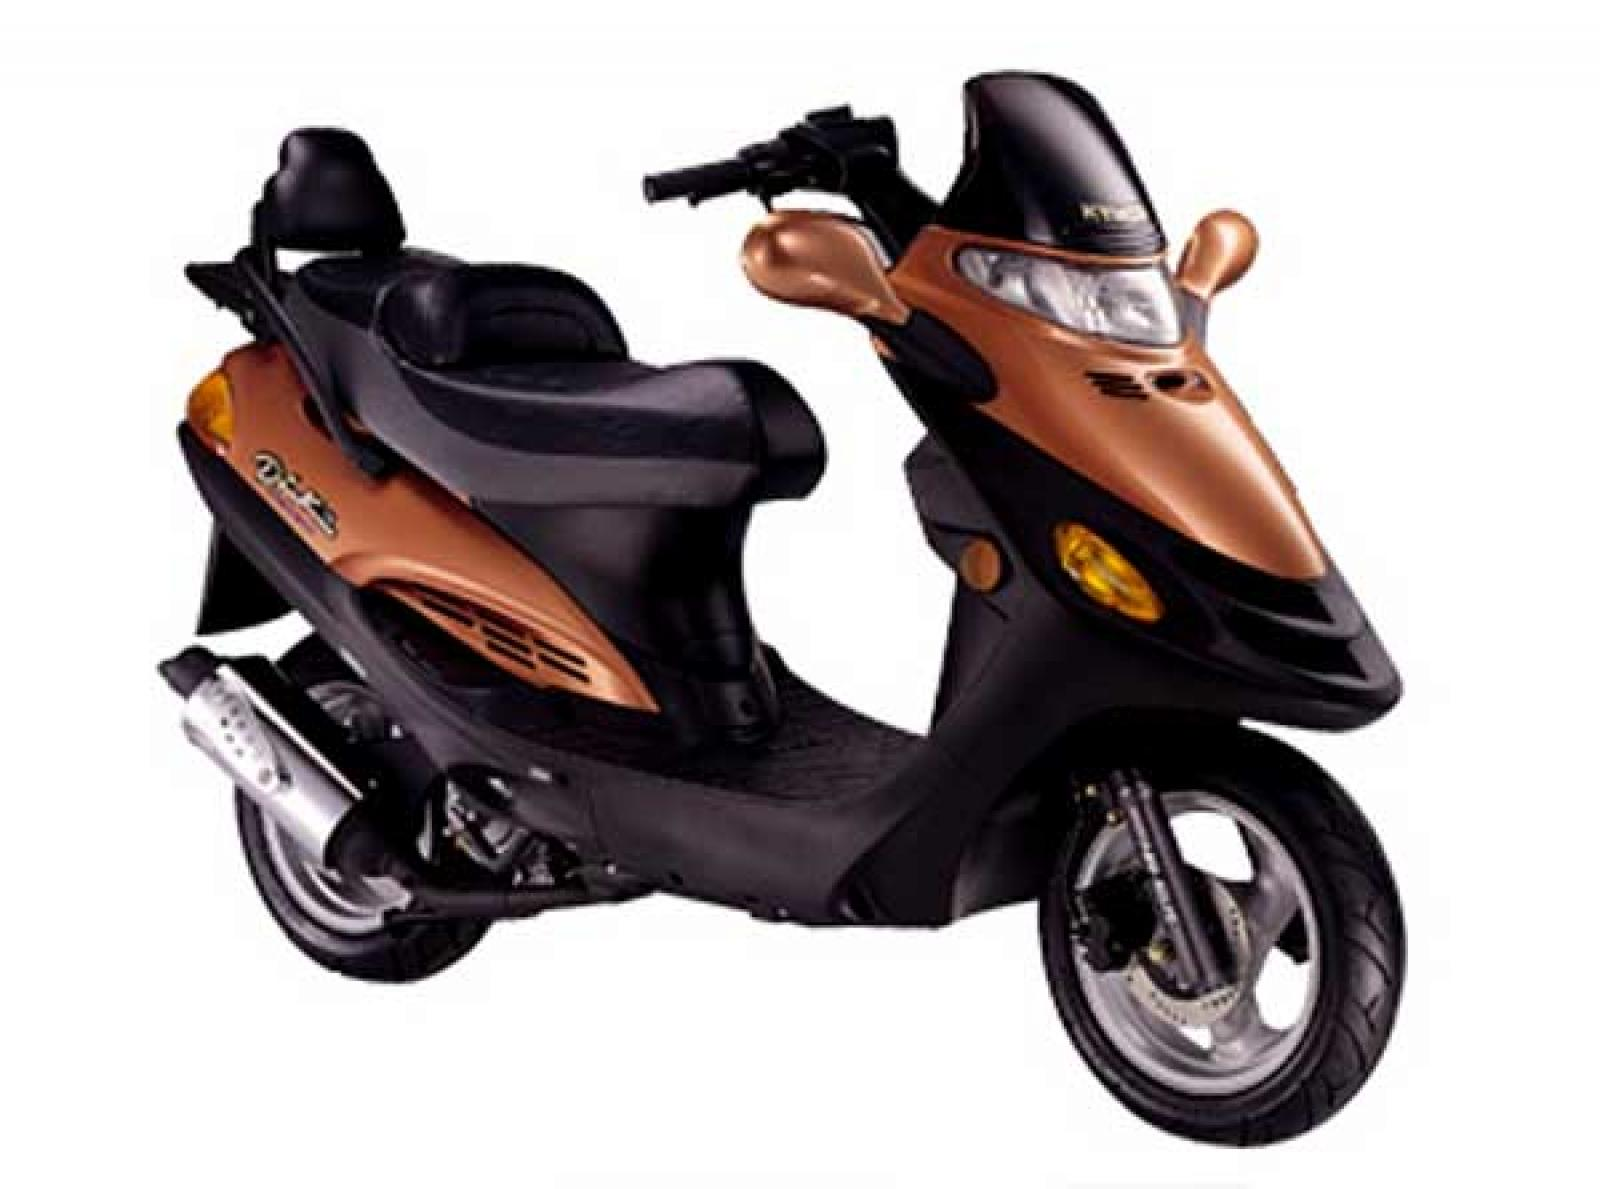 Kymco Heroism 150 1998 images #100852